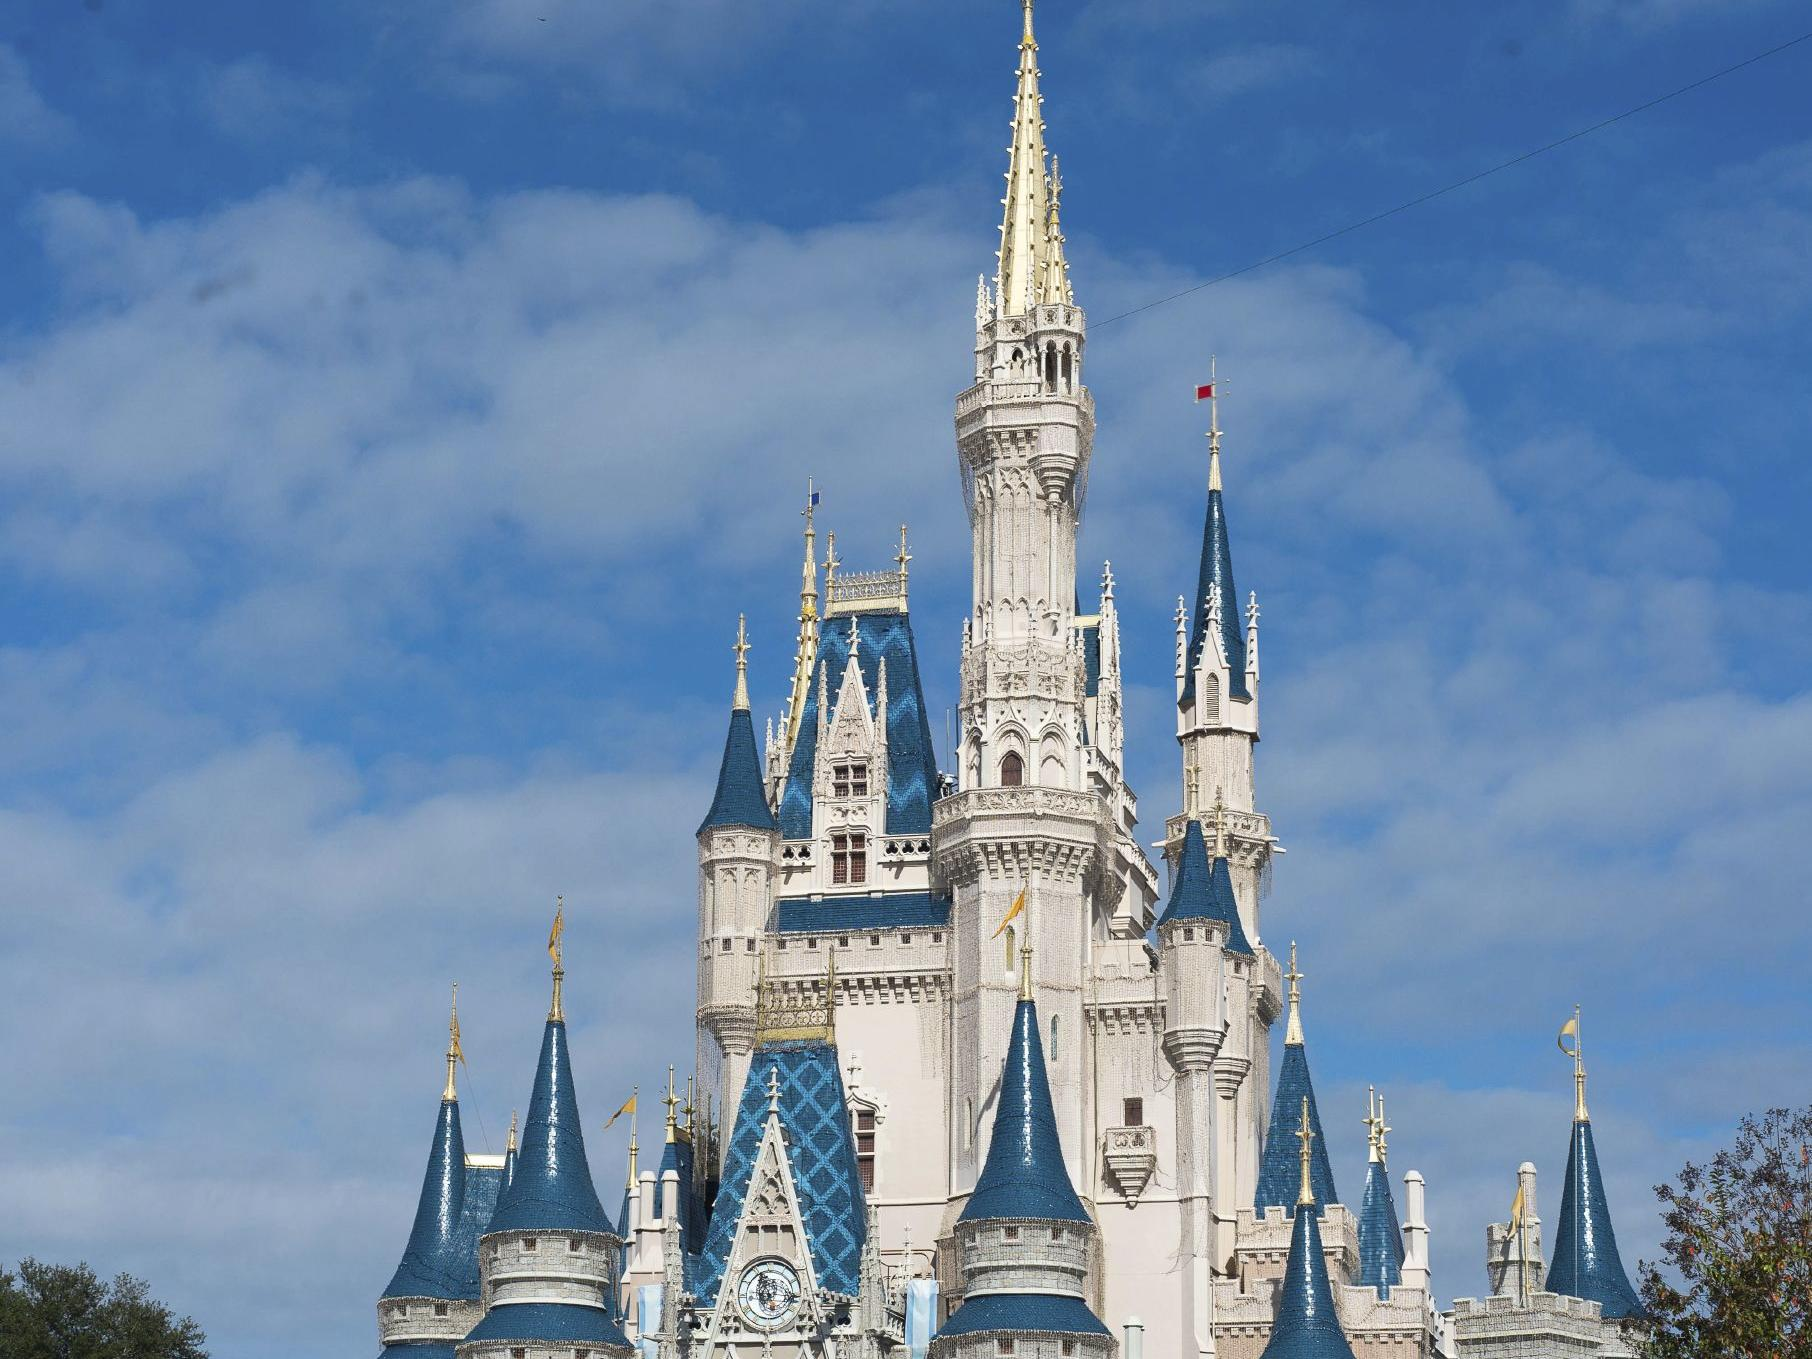 Cinderlla's Castle at Walt Disney World's Magic Kingdom